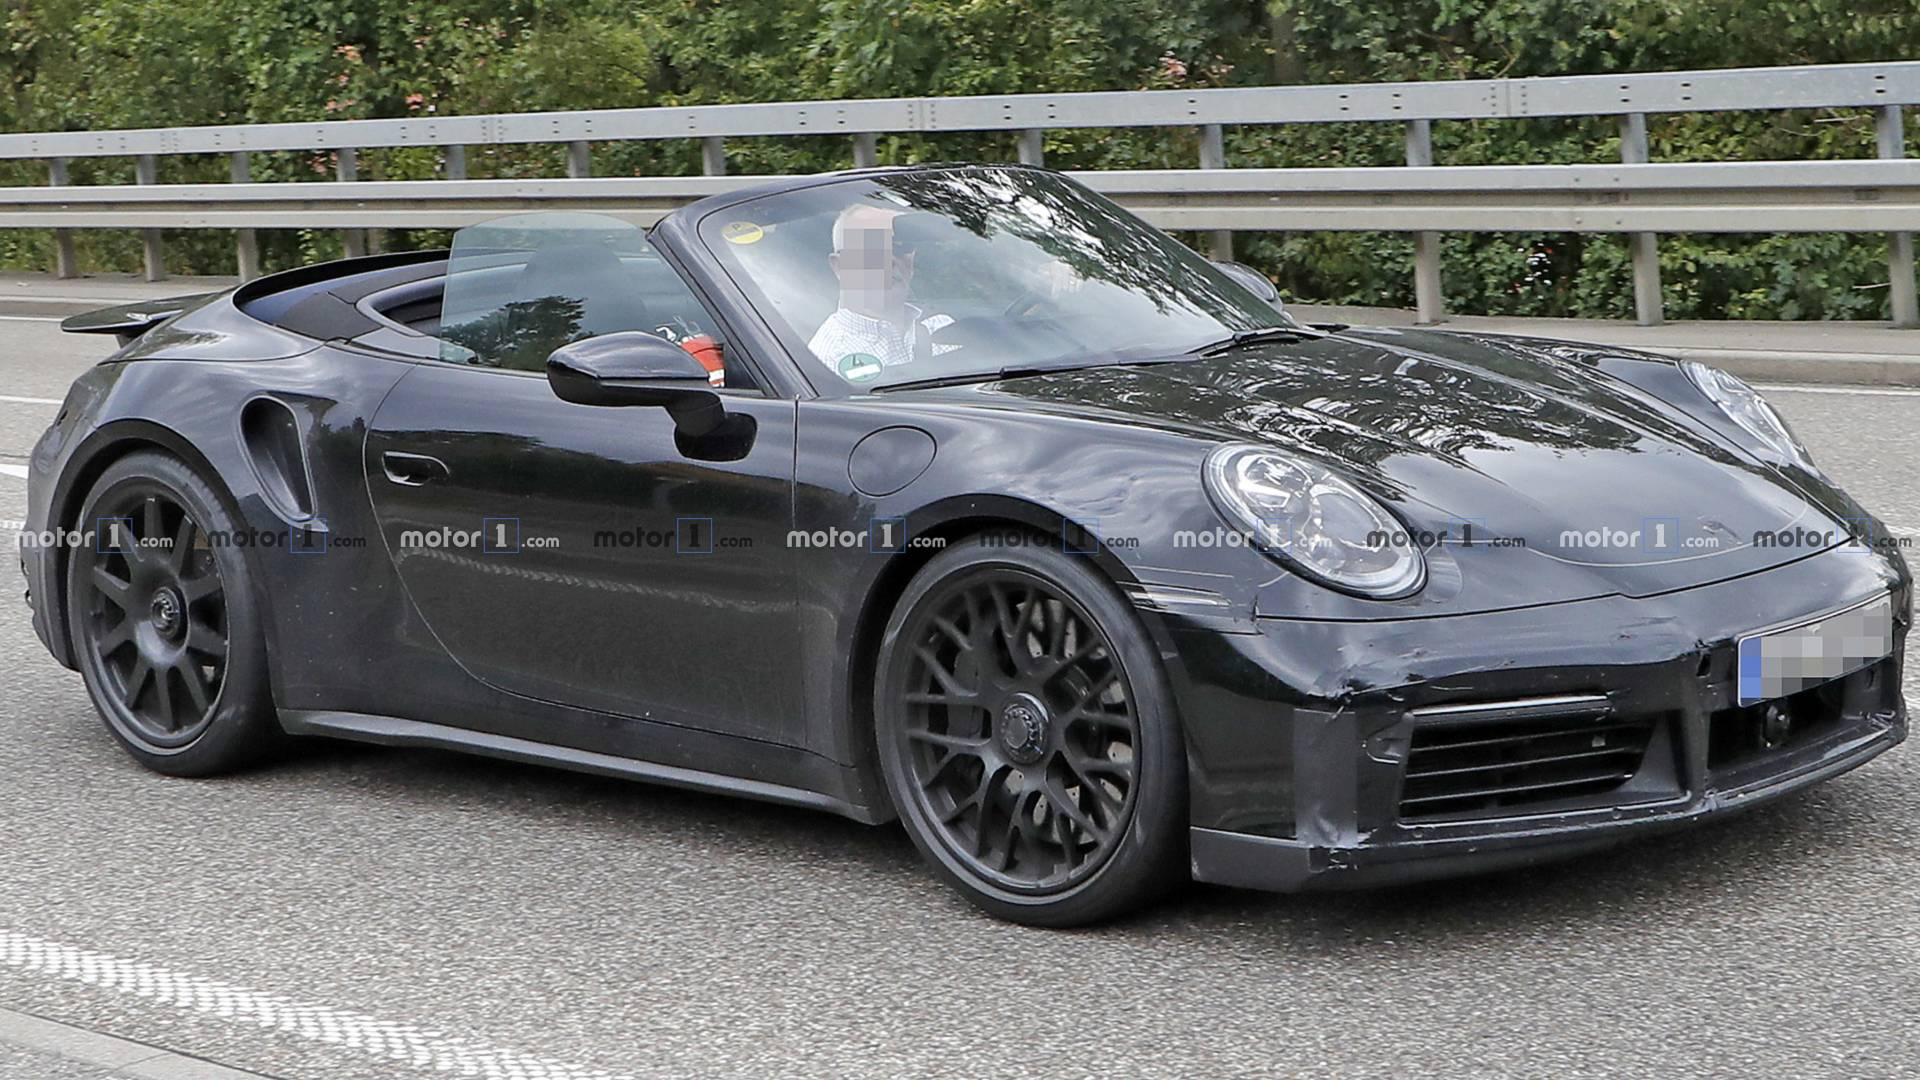 2018 - [Porsche] 911 - Page 9 Porsche-911-turbo-convertible-spy-shots